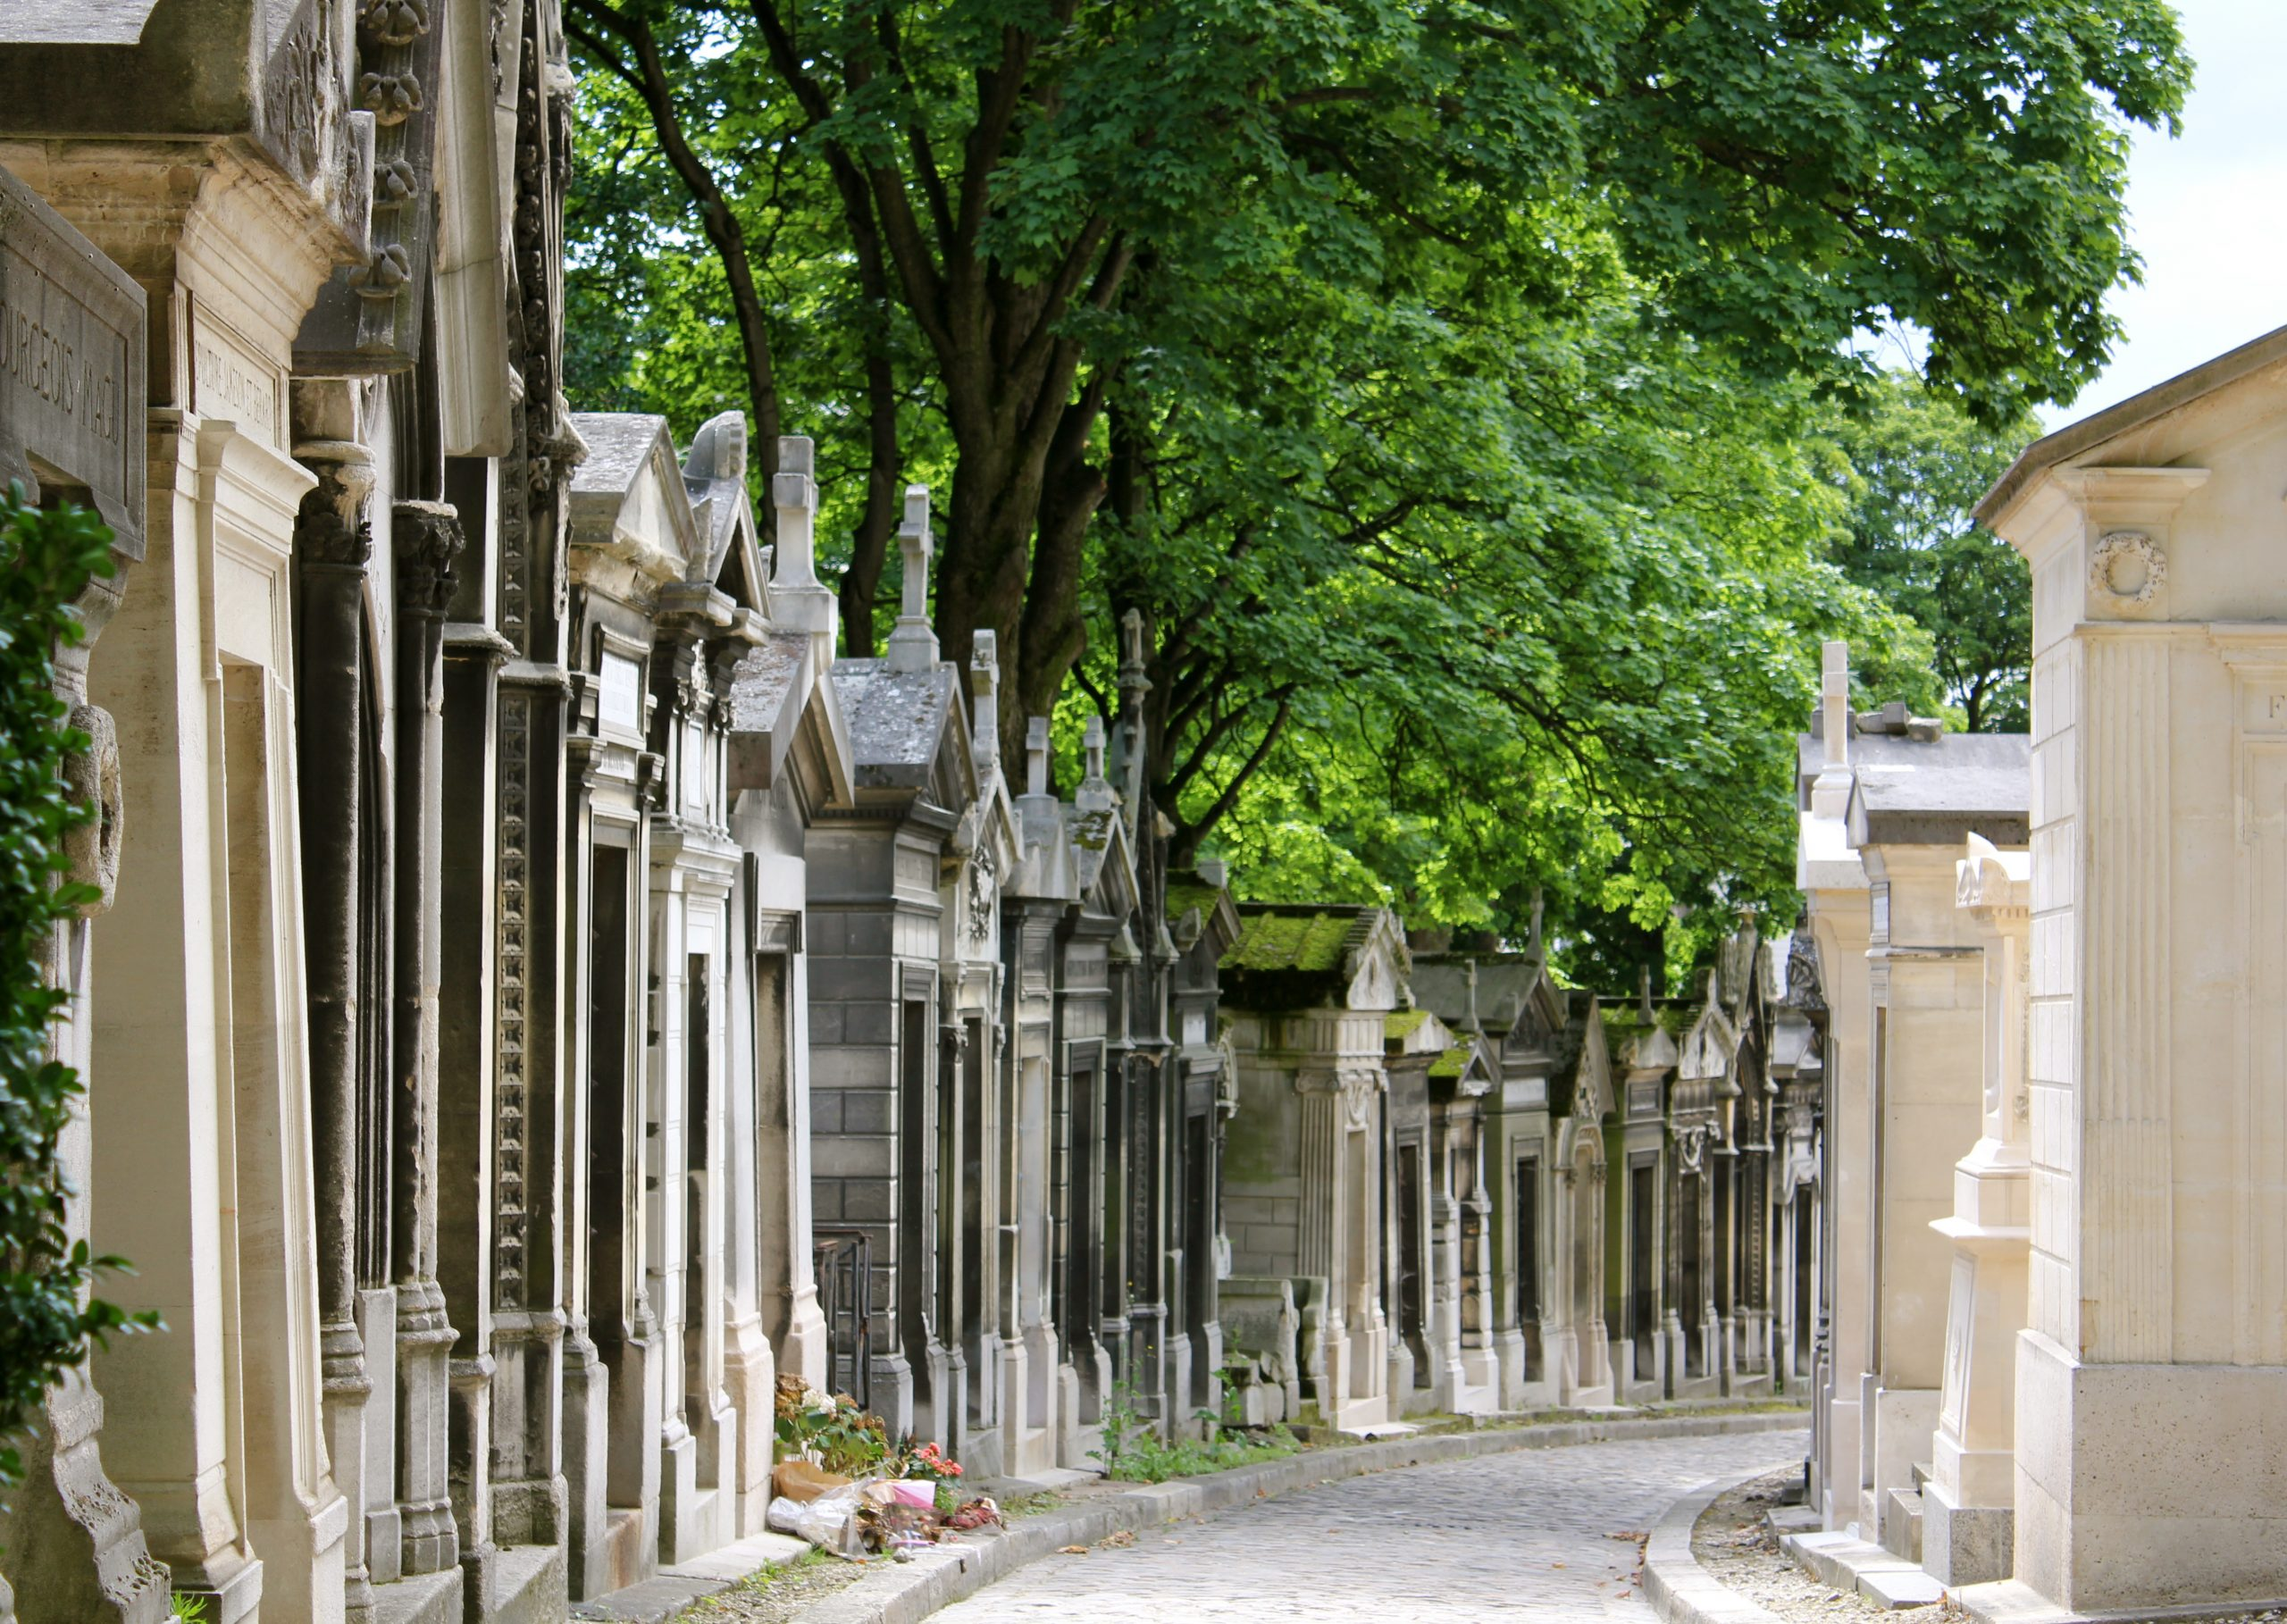 application_mobile_italia_père-lachaise_teria